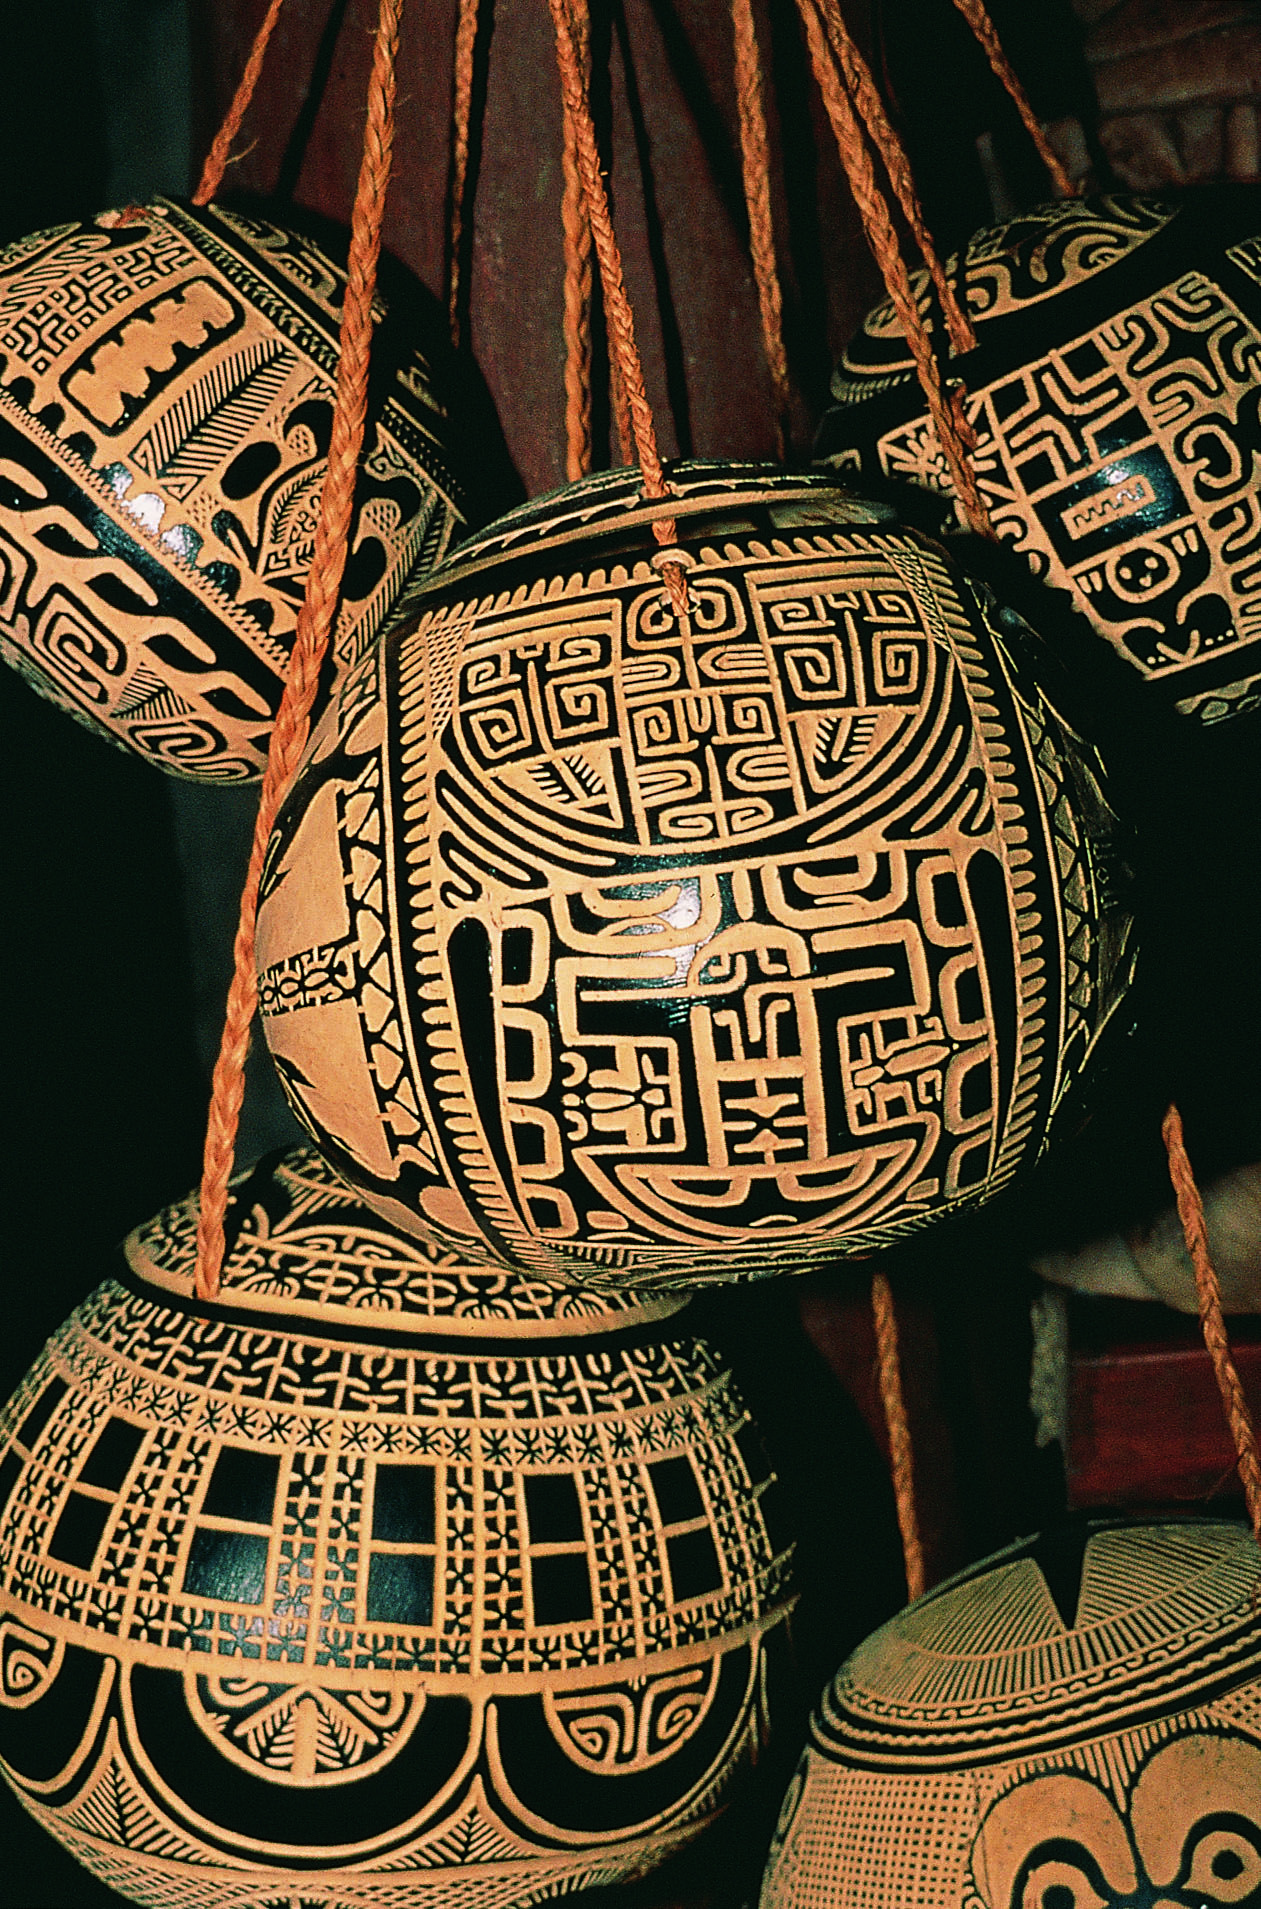 Marquesan Carved Coconut's from The Islands of Tahiti